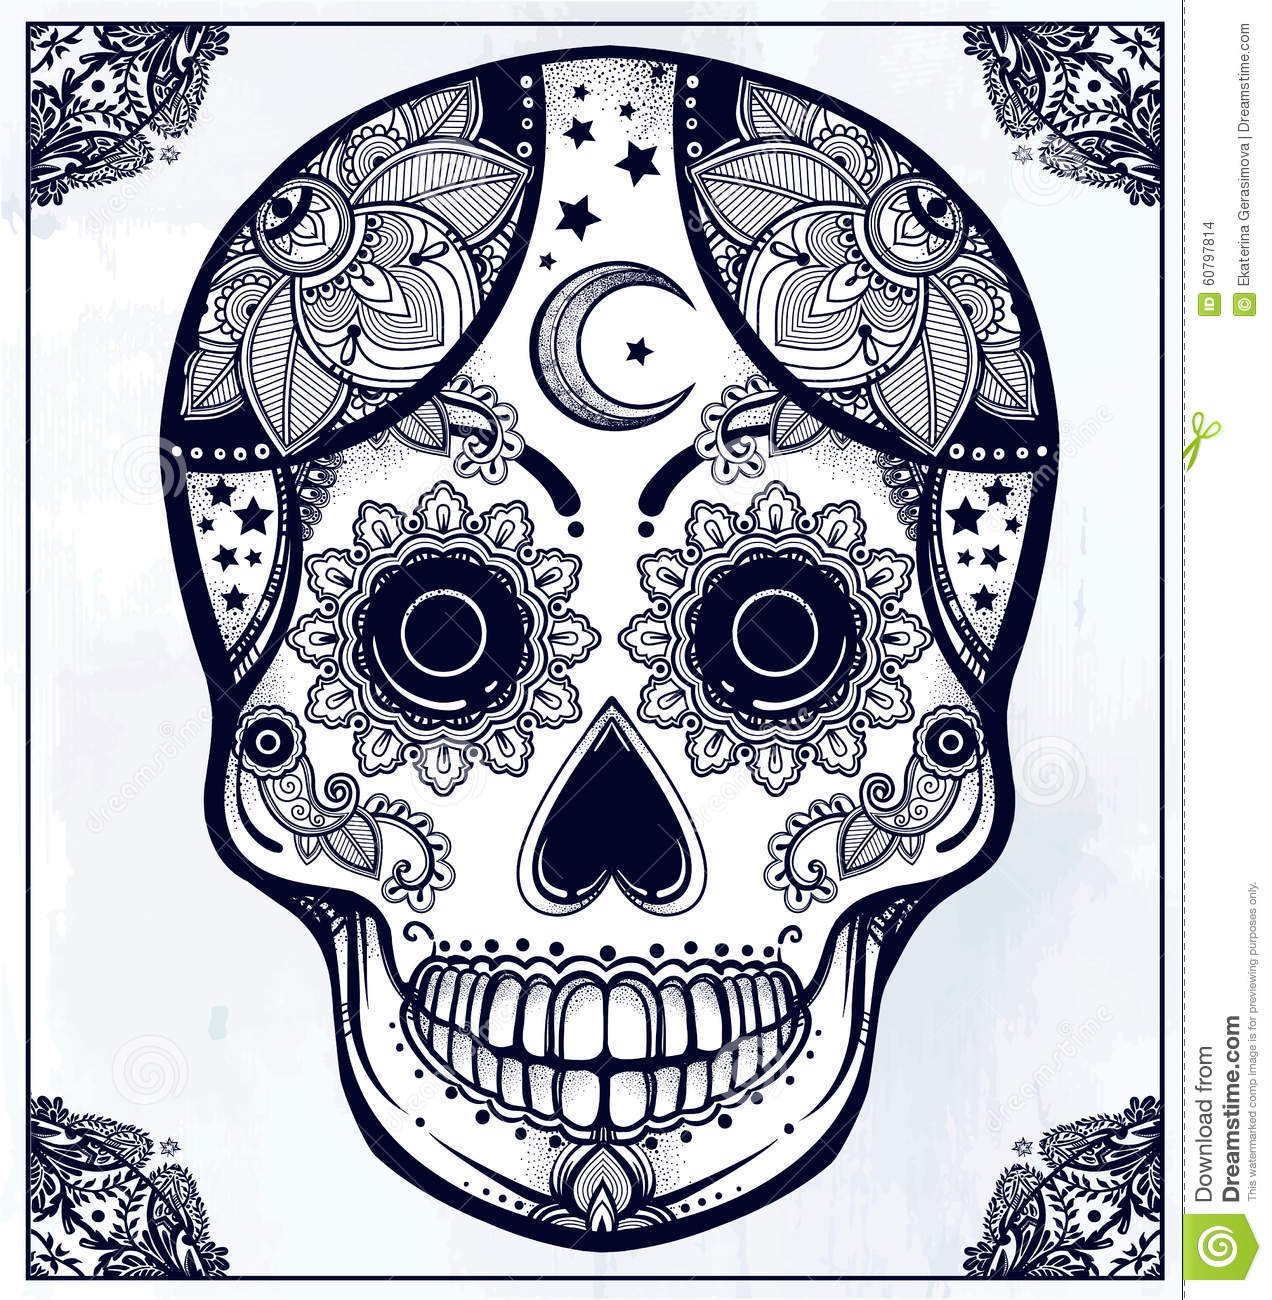 Hand Drawn Sugar Skull Ornate Frame Illustration